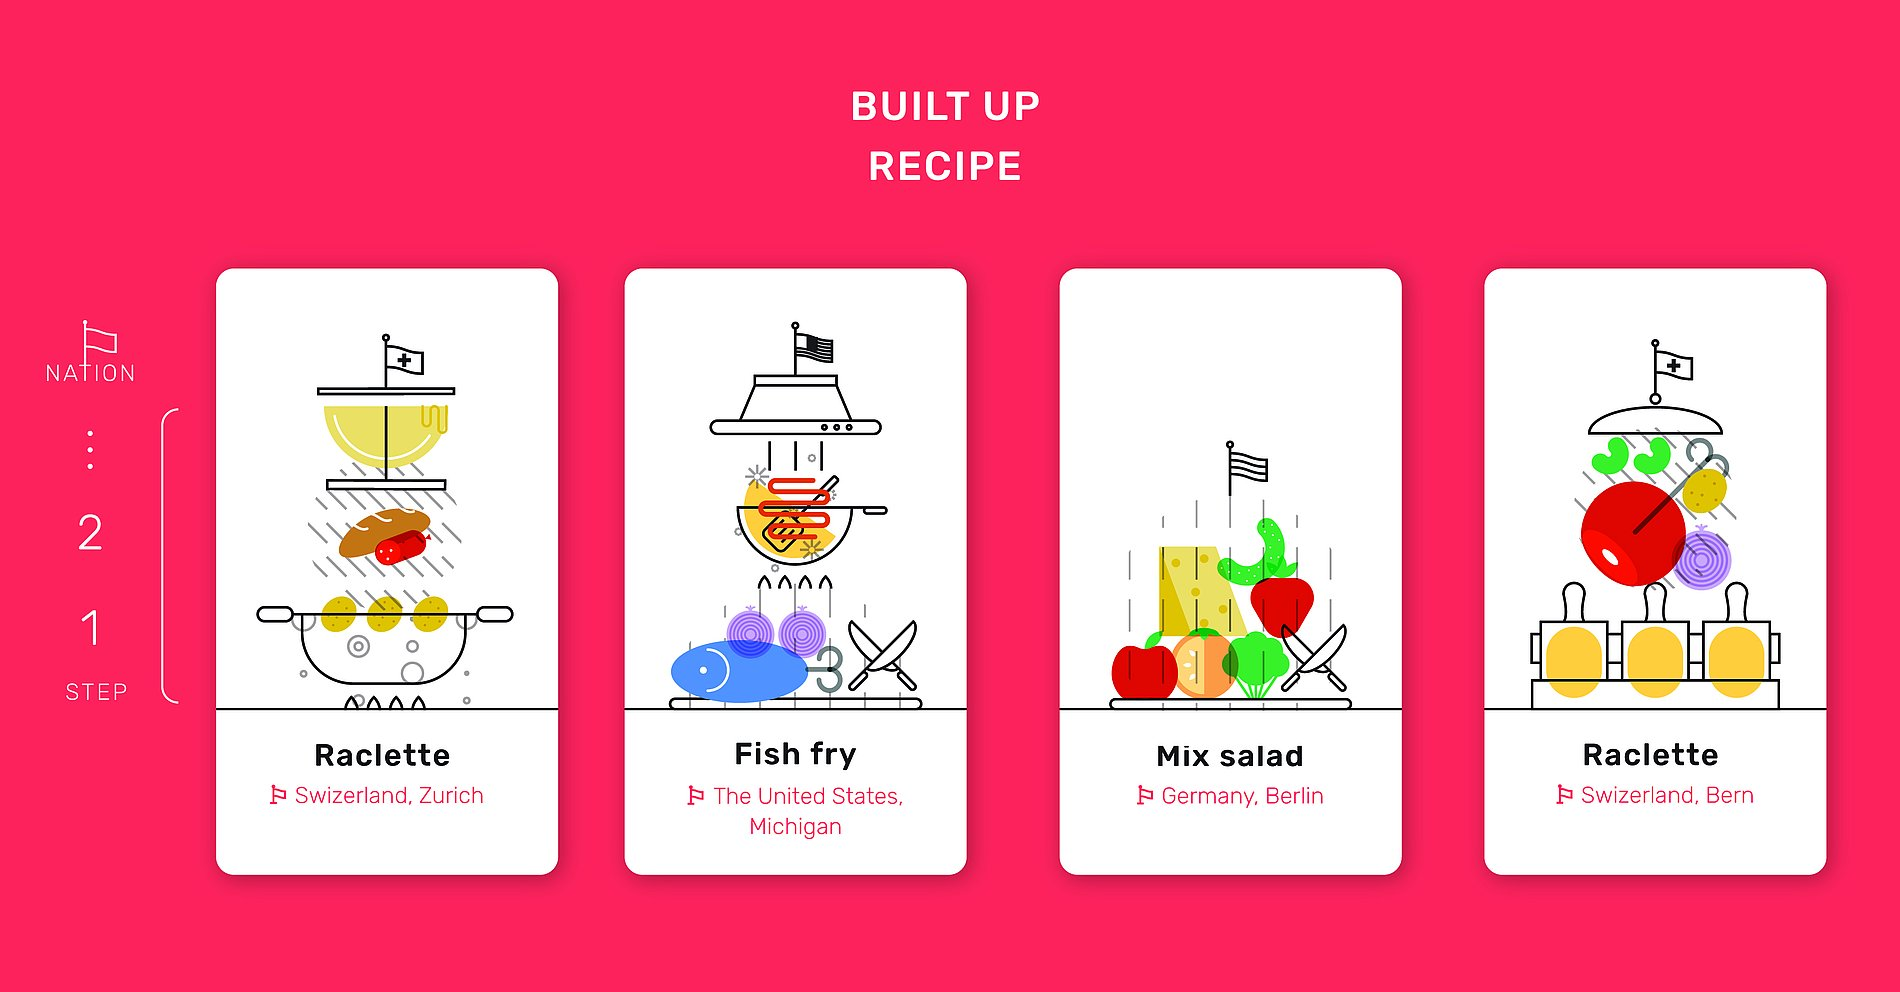 Sha-Fu_Food Culture Sharing Service Within Airbnb's Kitchen | Red Dot Design Award